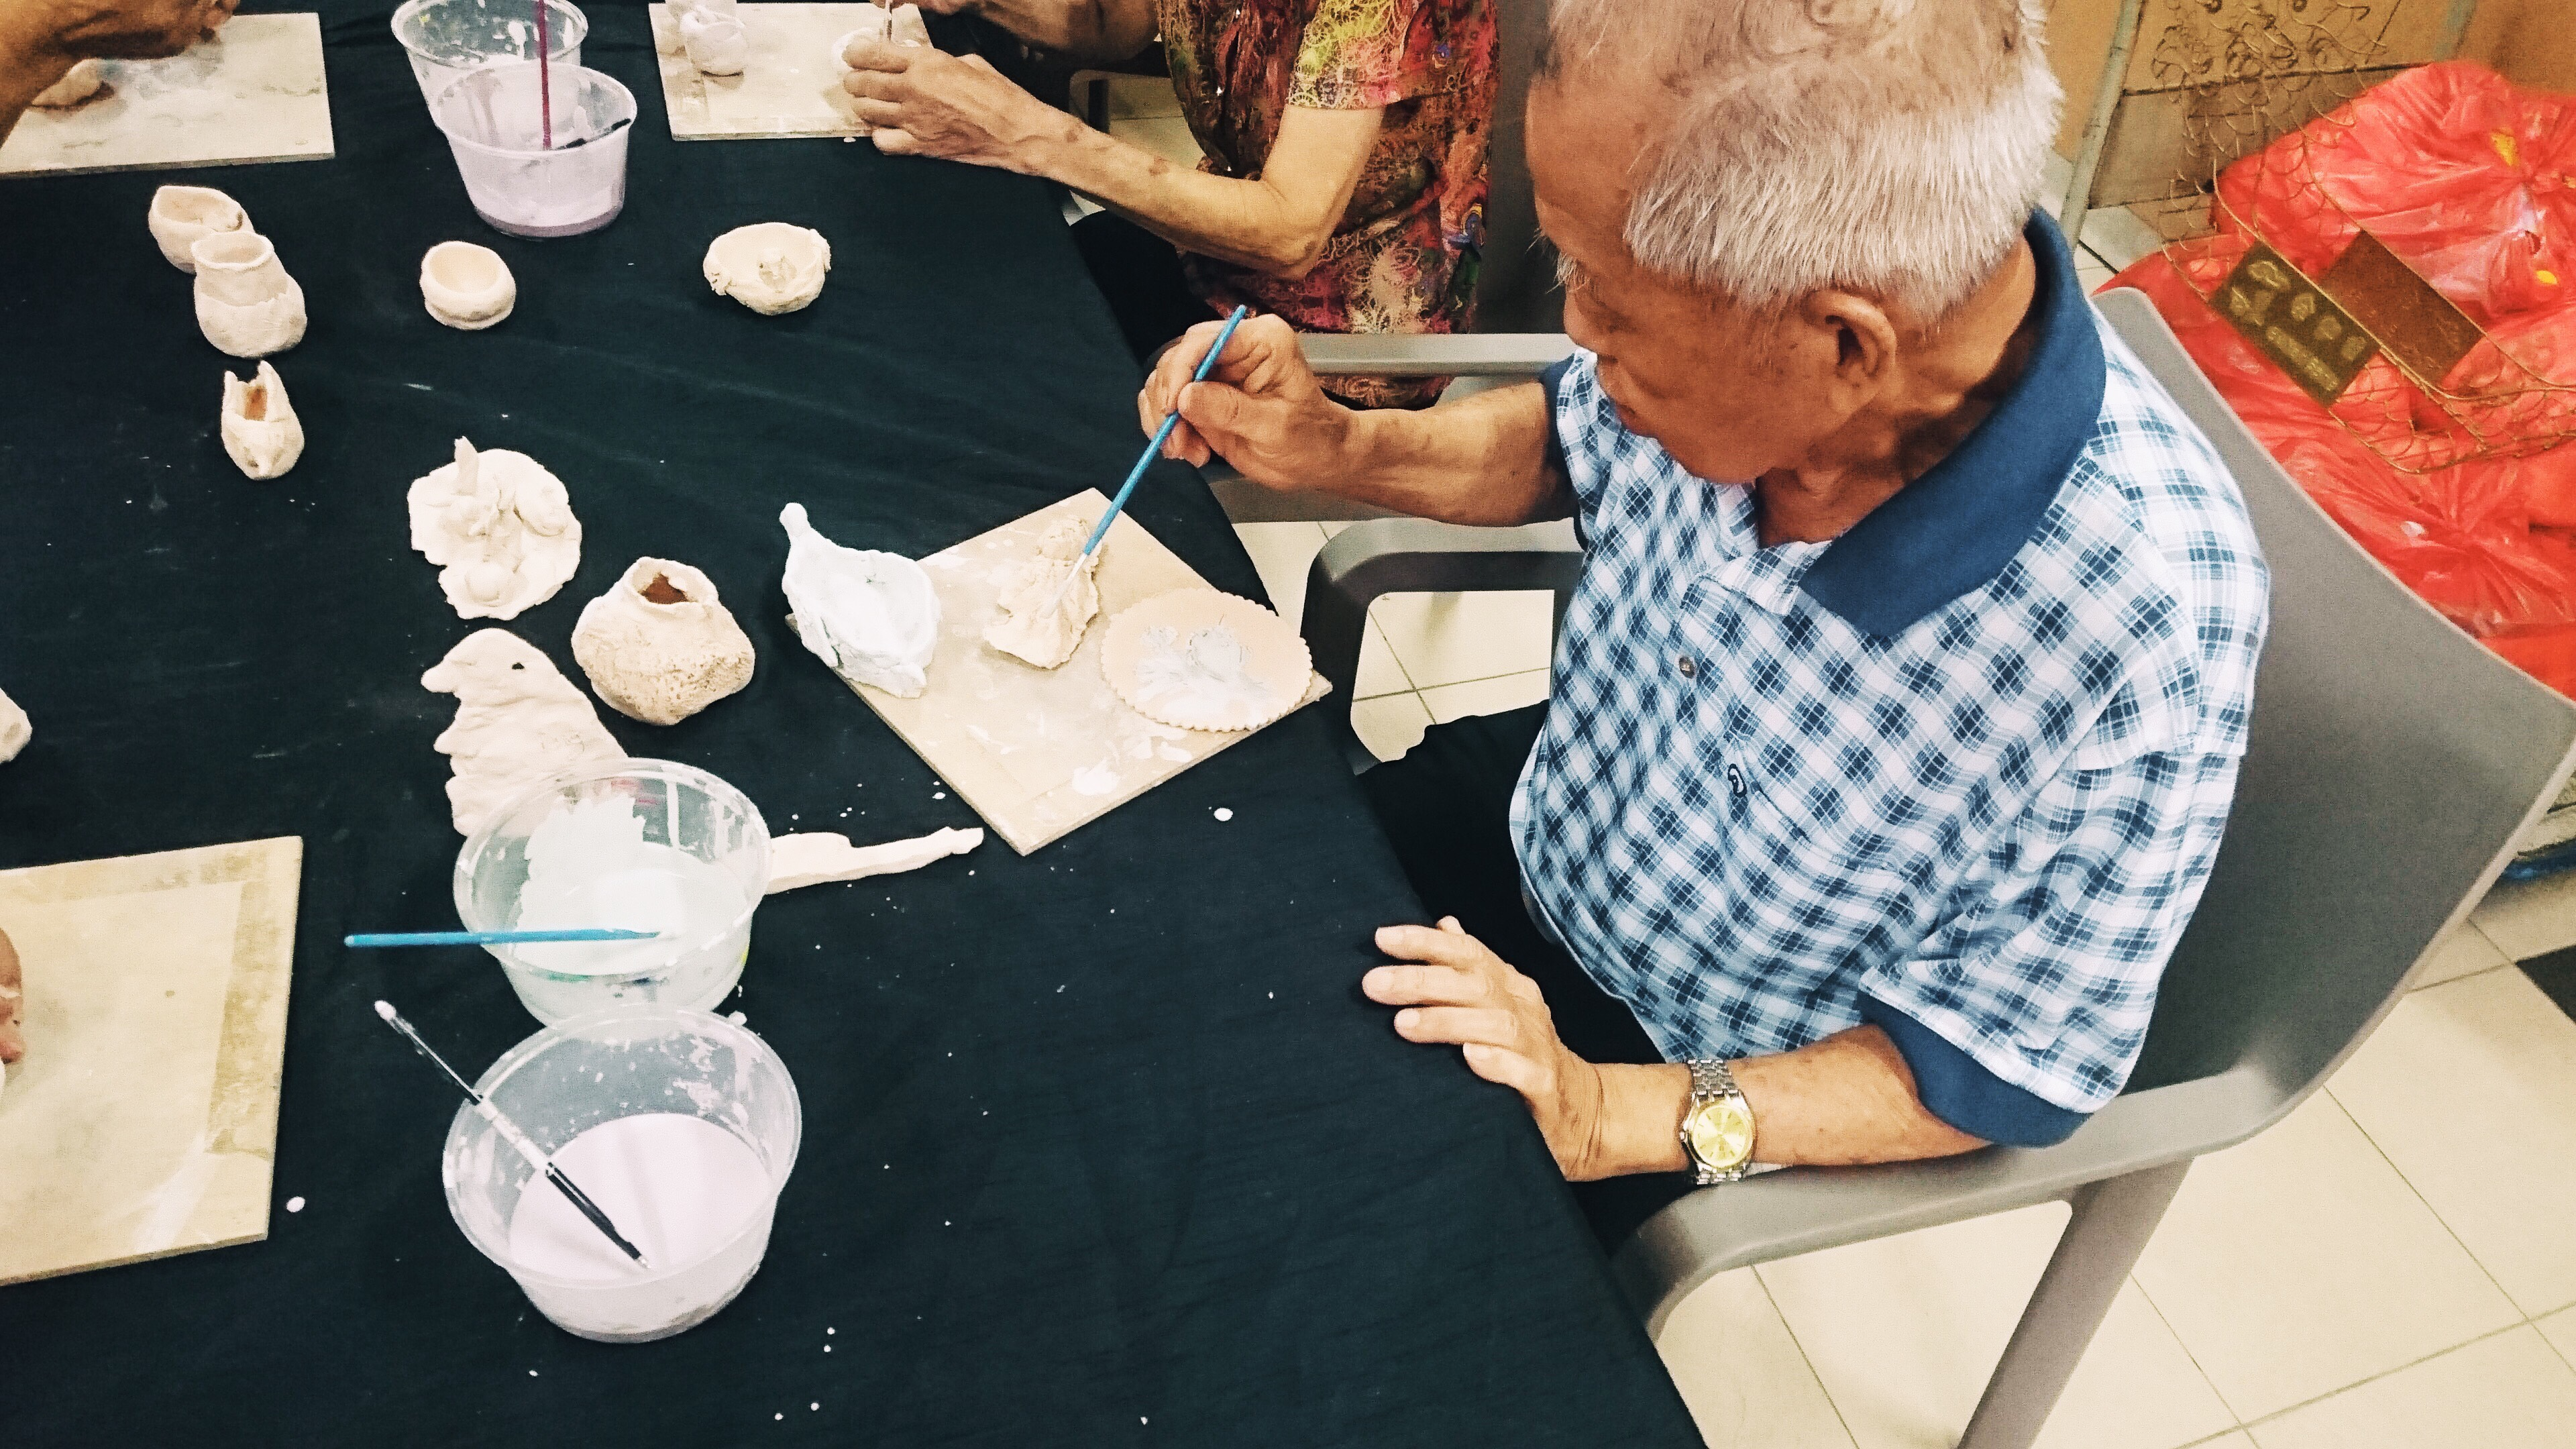 art workshops to help with mental health